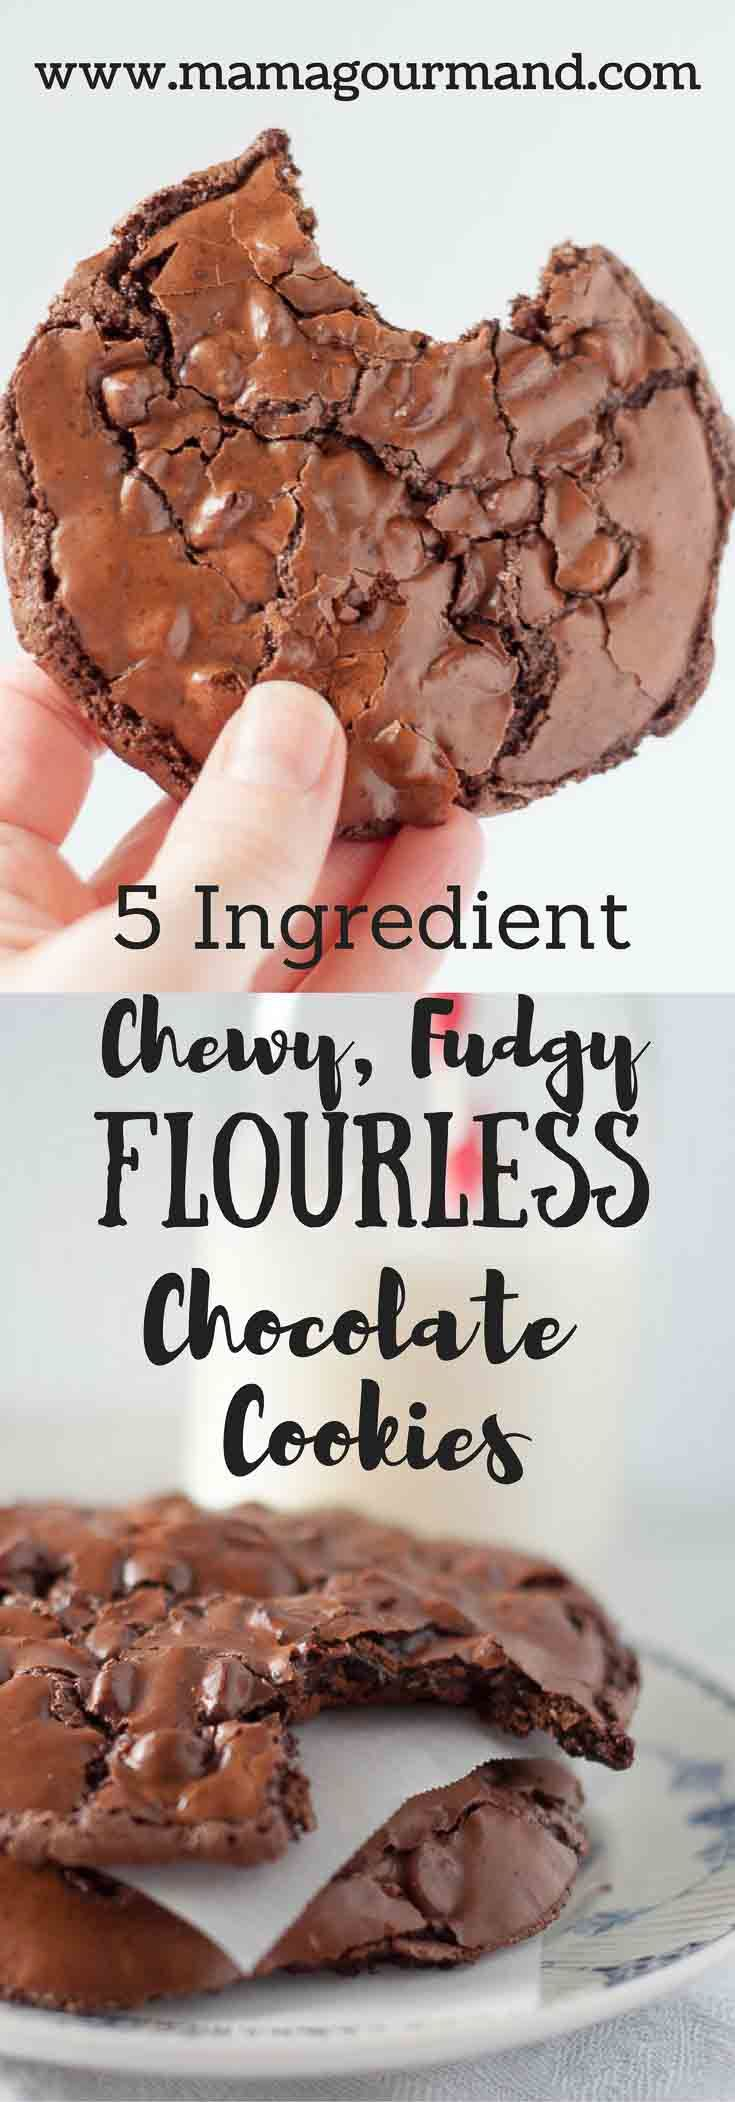 Chewy, Fudgy Flourless Chocolate Cookies are a naturally gluten free chocolate cookie with only 5 ingredients. These flourless cookies are life changing!http://www.mamagourmand.com via @mamagourmand